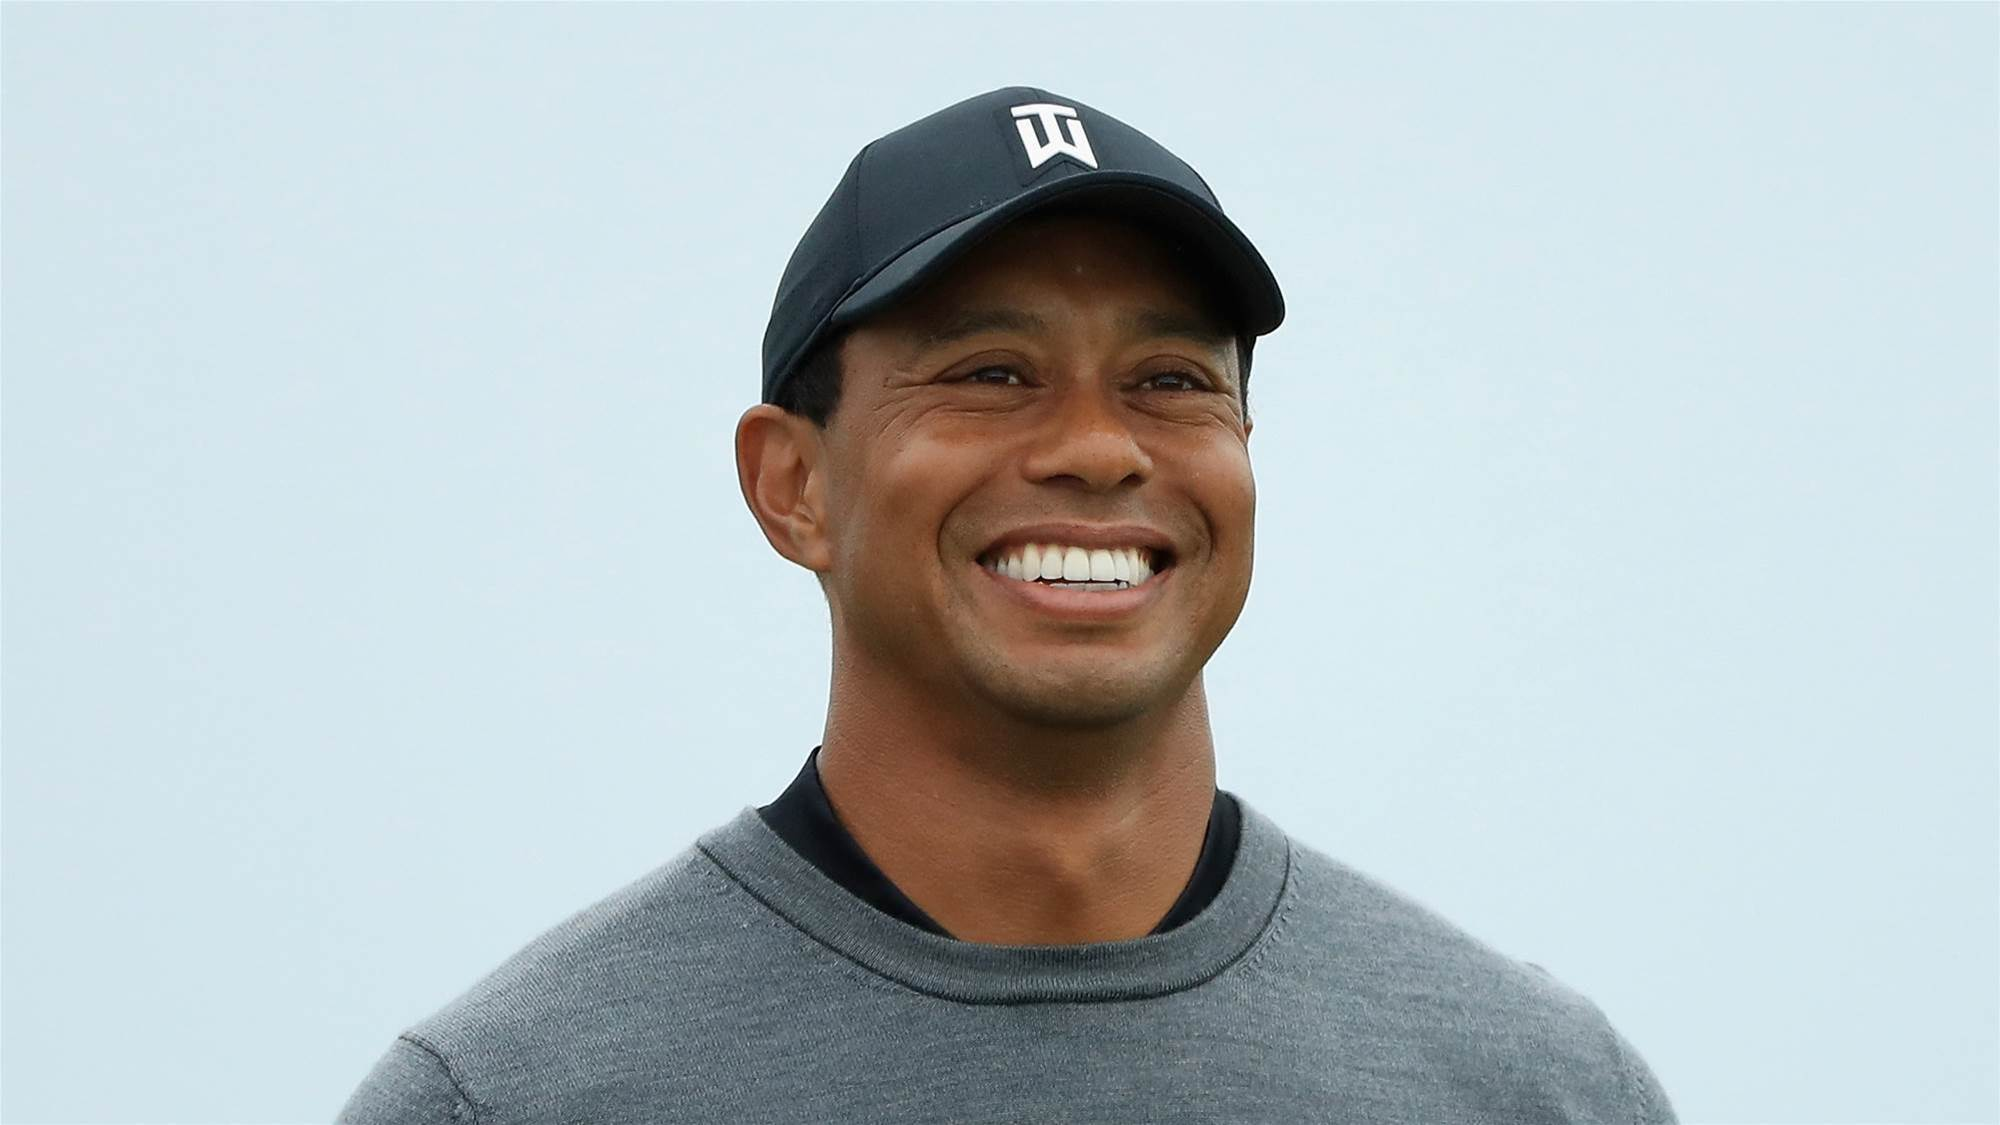 Woods thankful for second chance on Tour